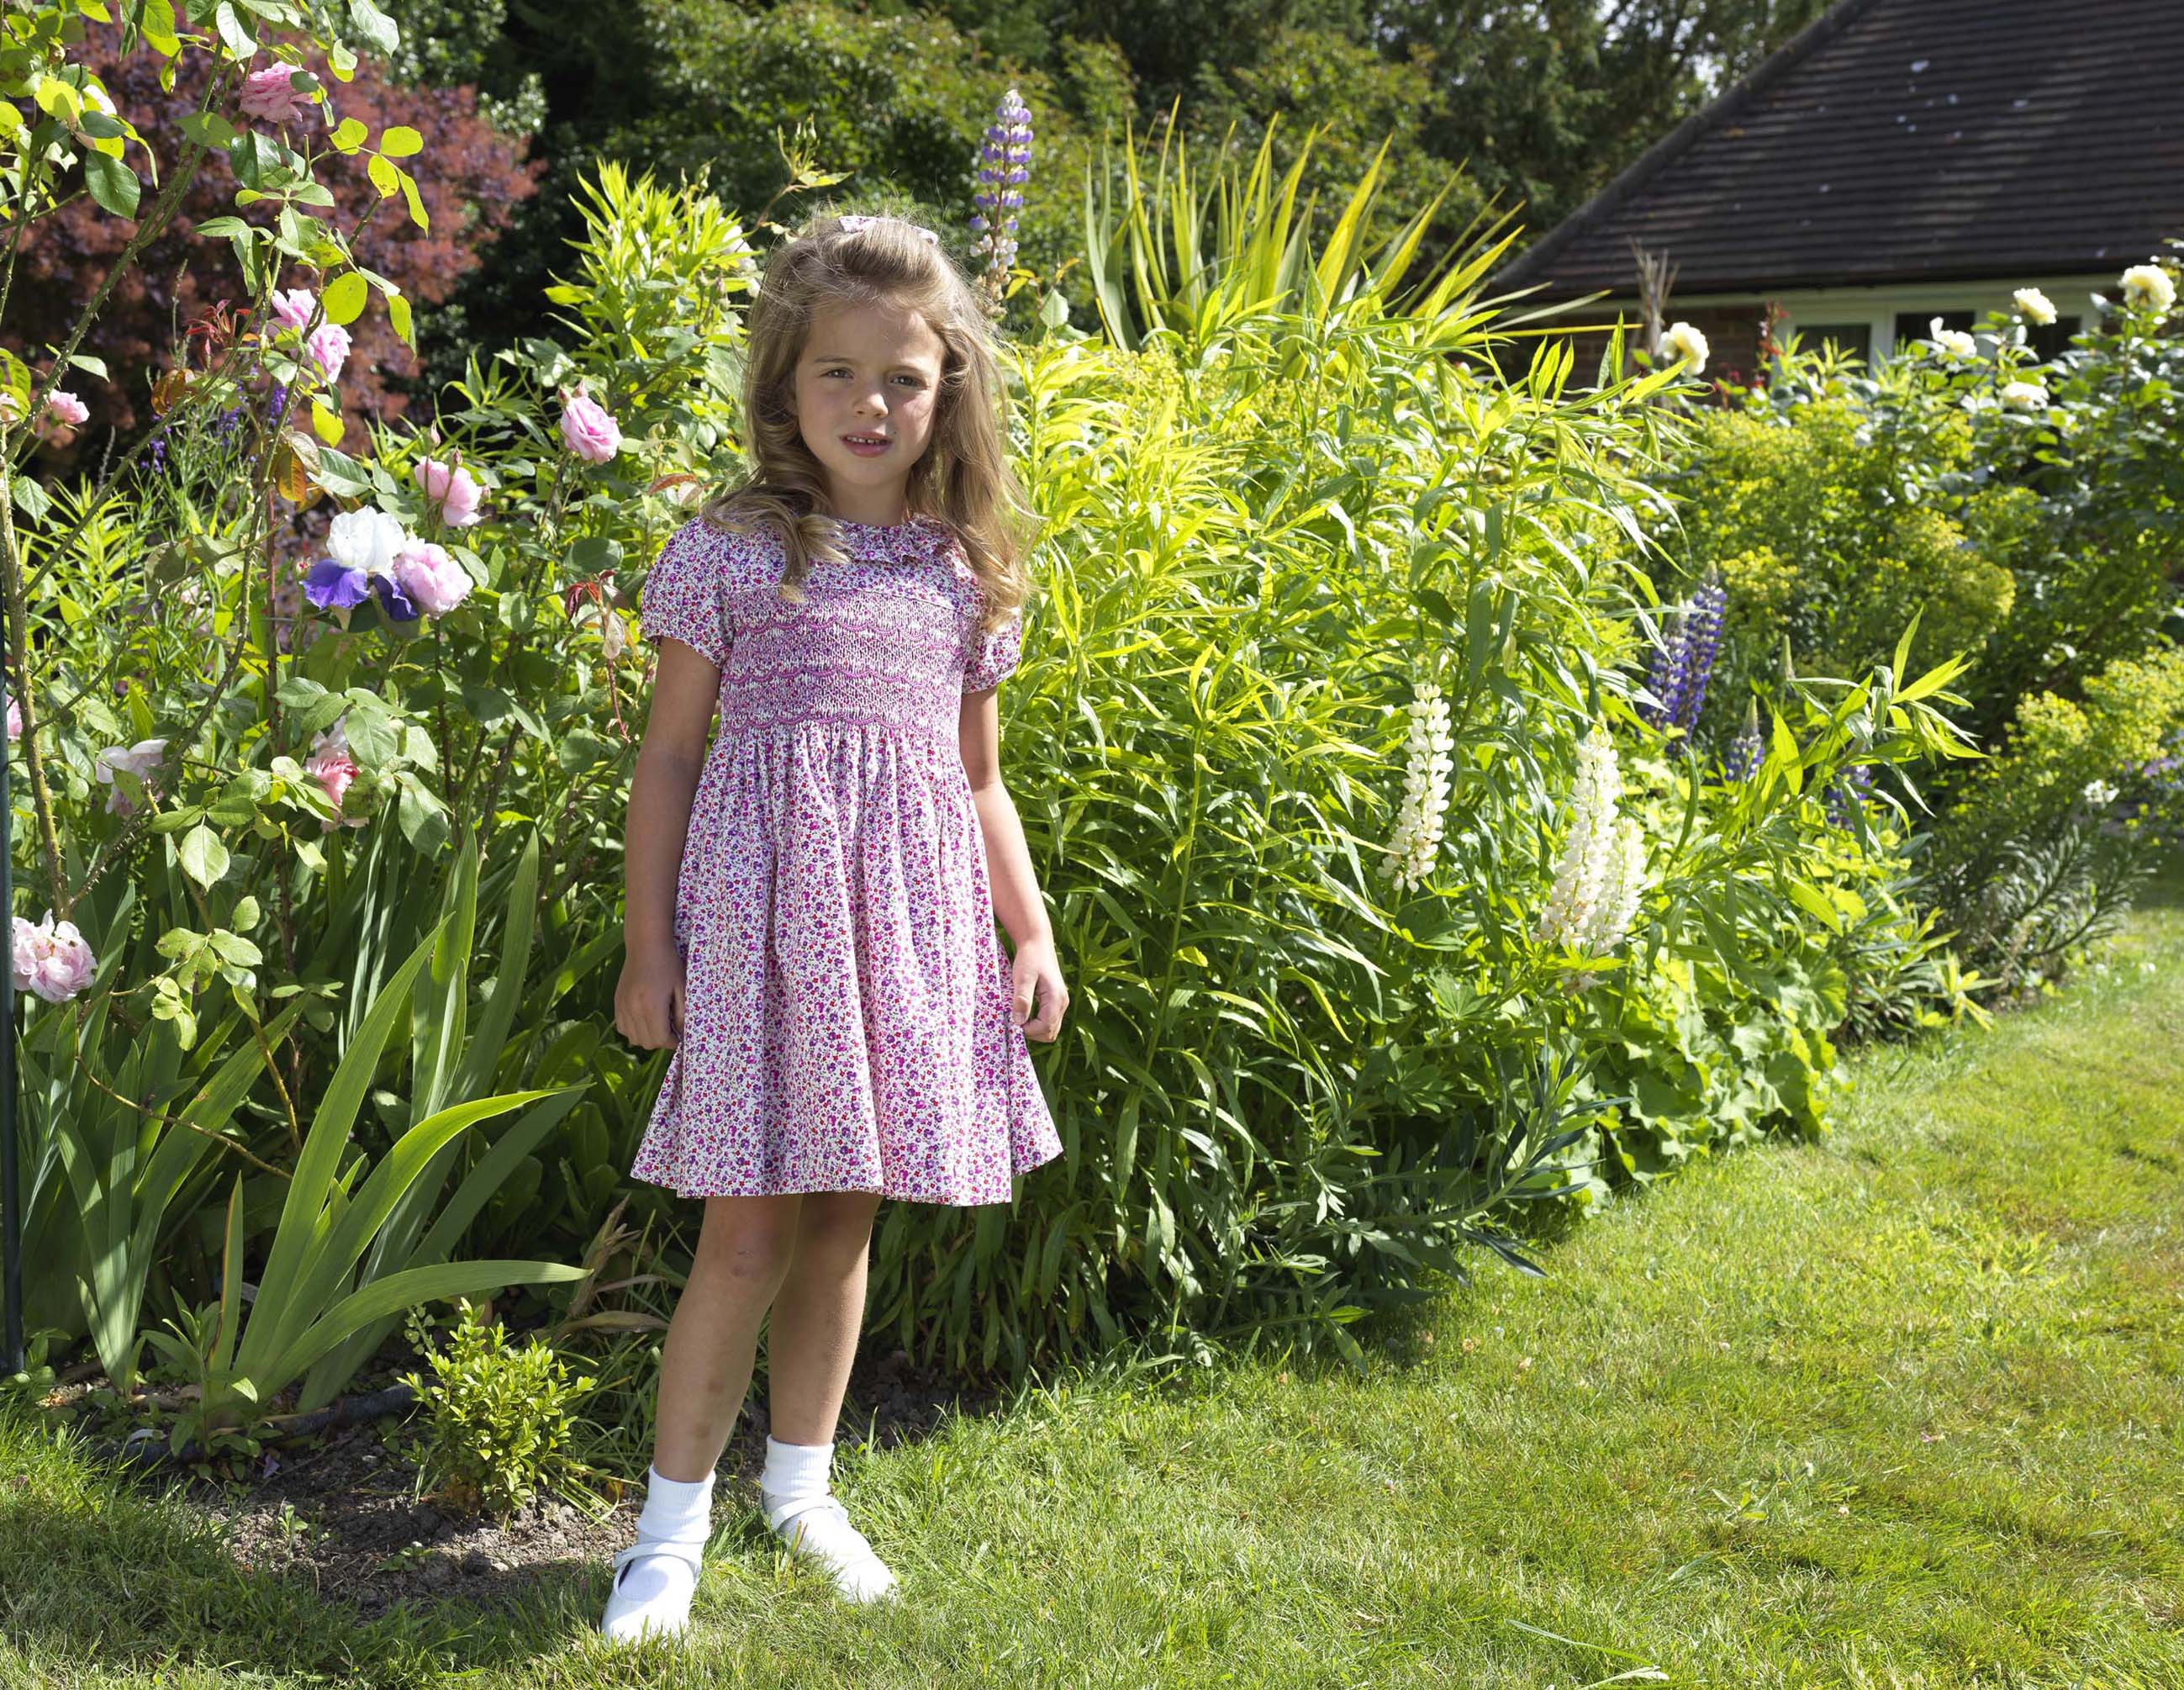 Young girl in pink floral dress in floral garden